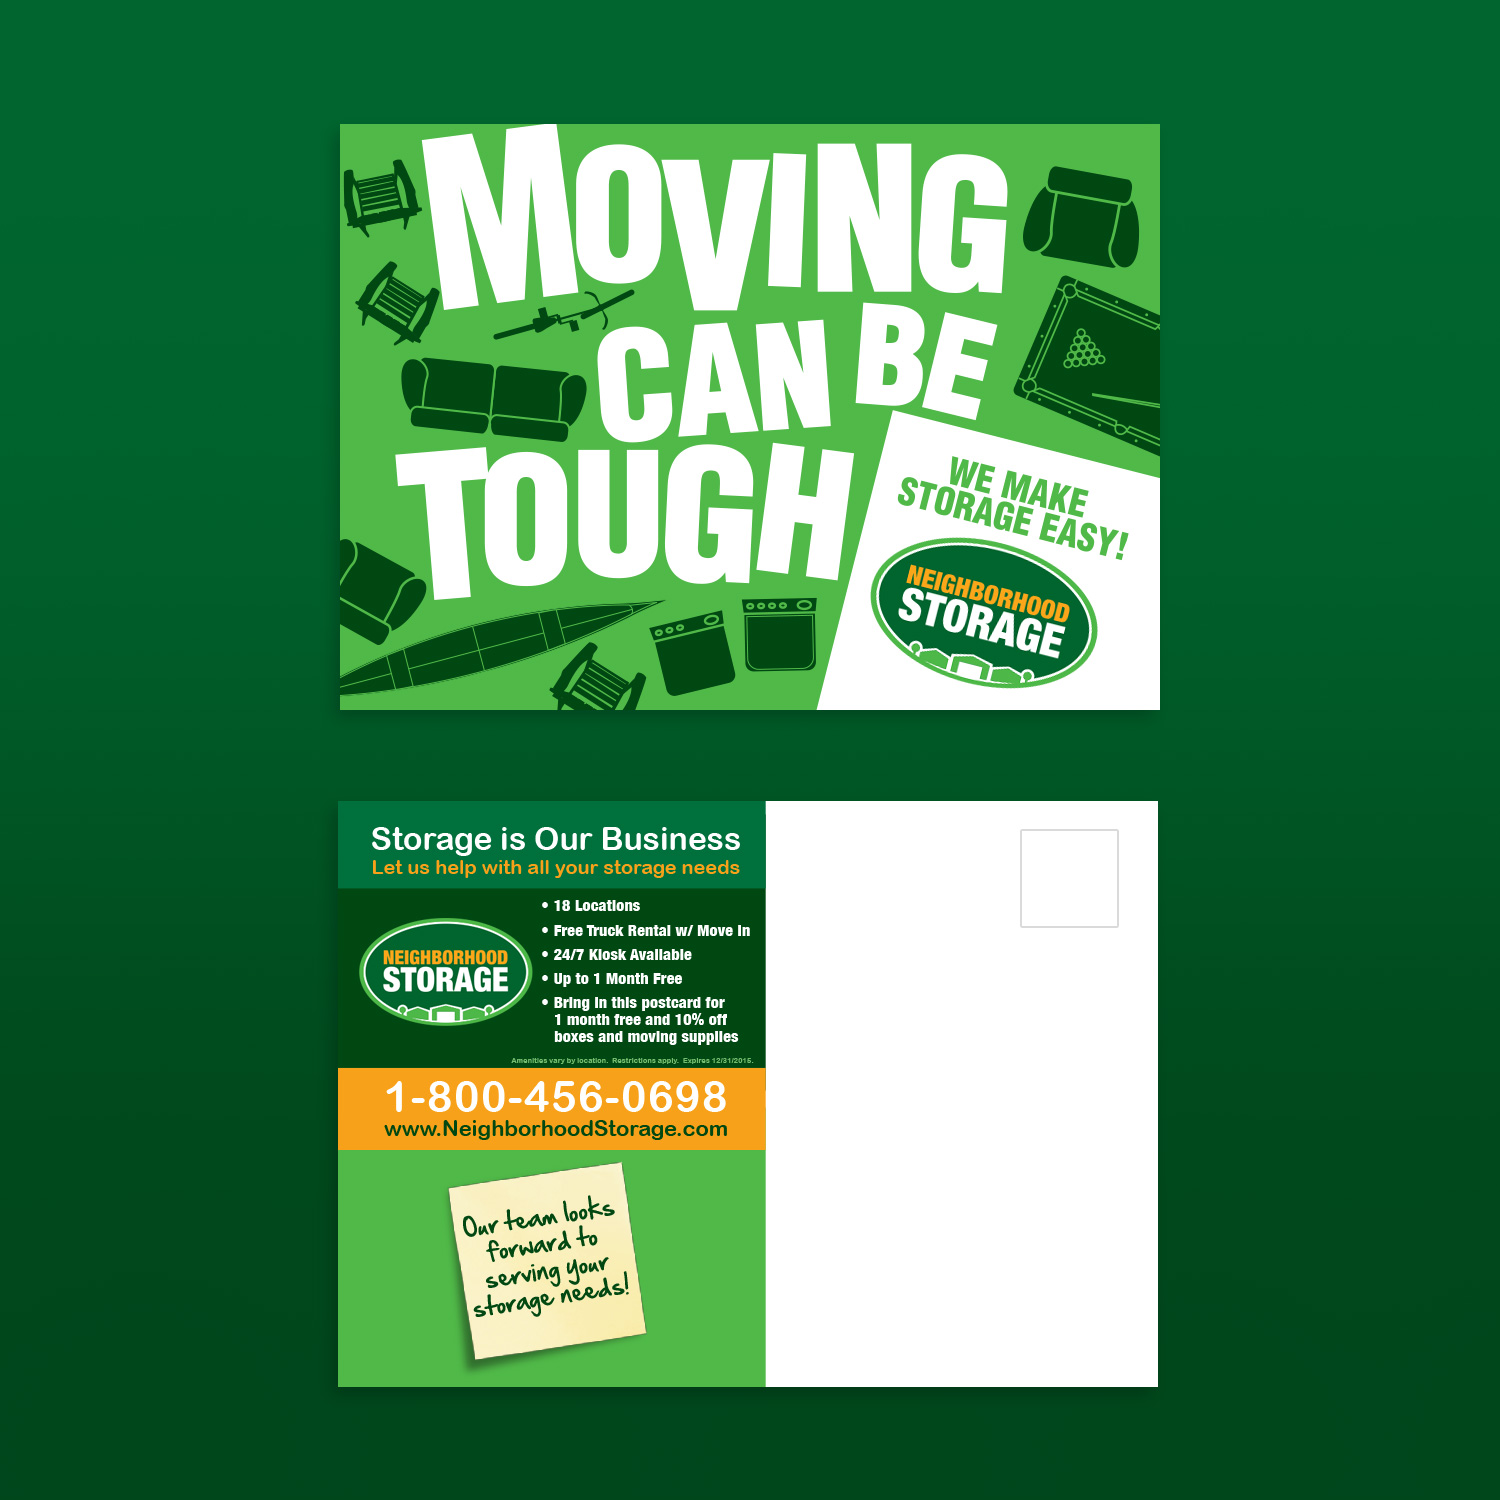 NSC-postcard-movingtough.jpg